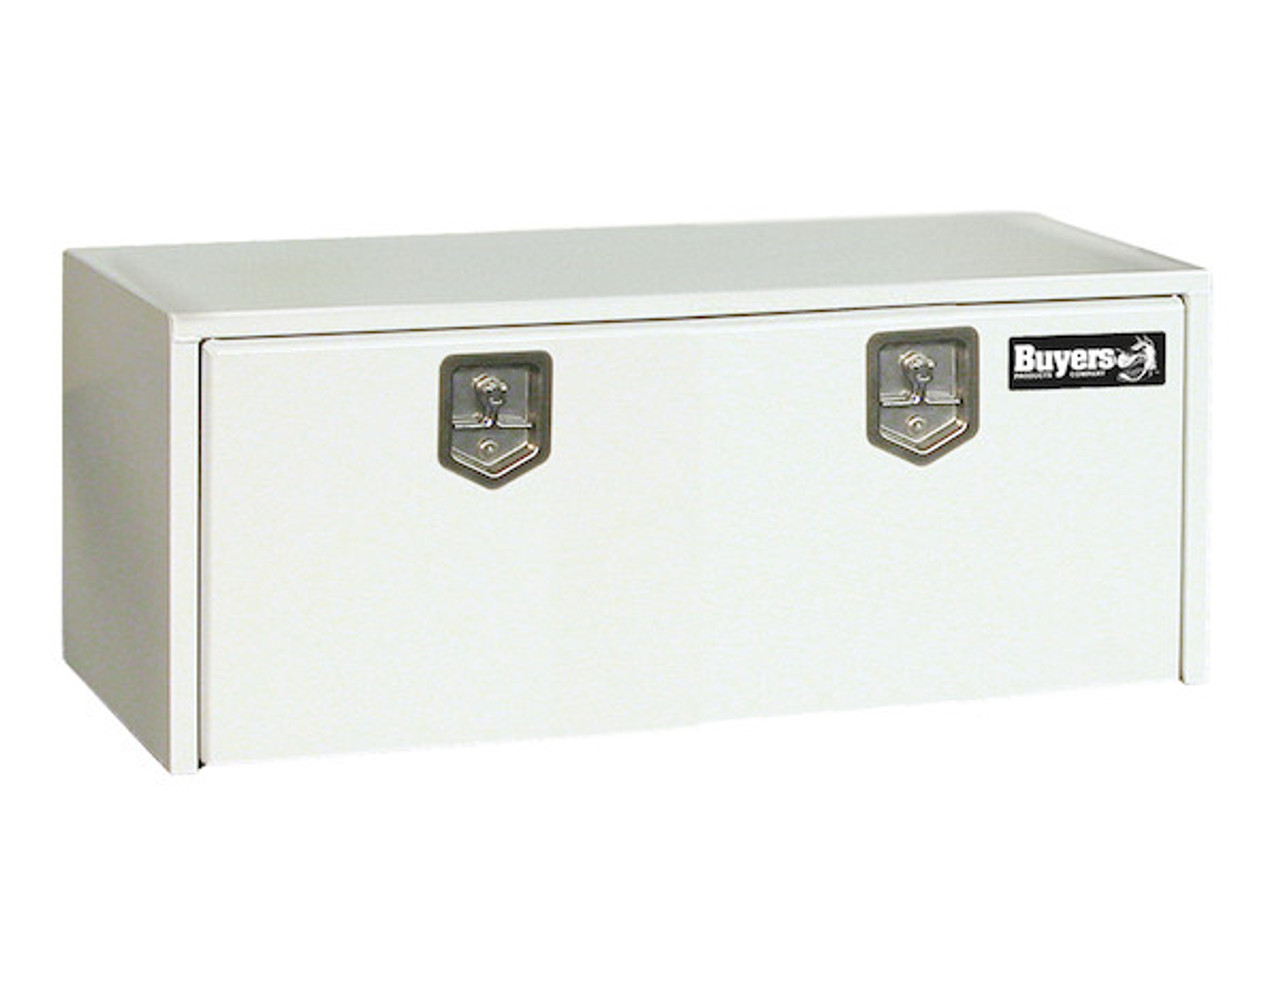 "1704415 BUYERS PRODUCTS WHITE STEEL UNDERBODY TRUCK TOOLBOX 24""HX24""DX60""W"